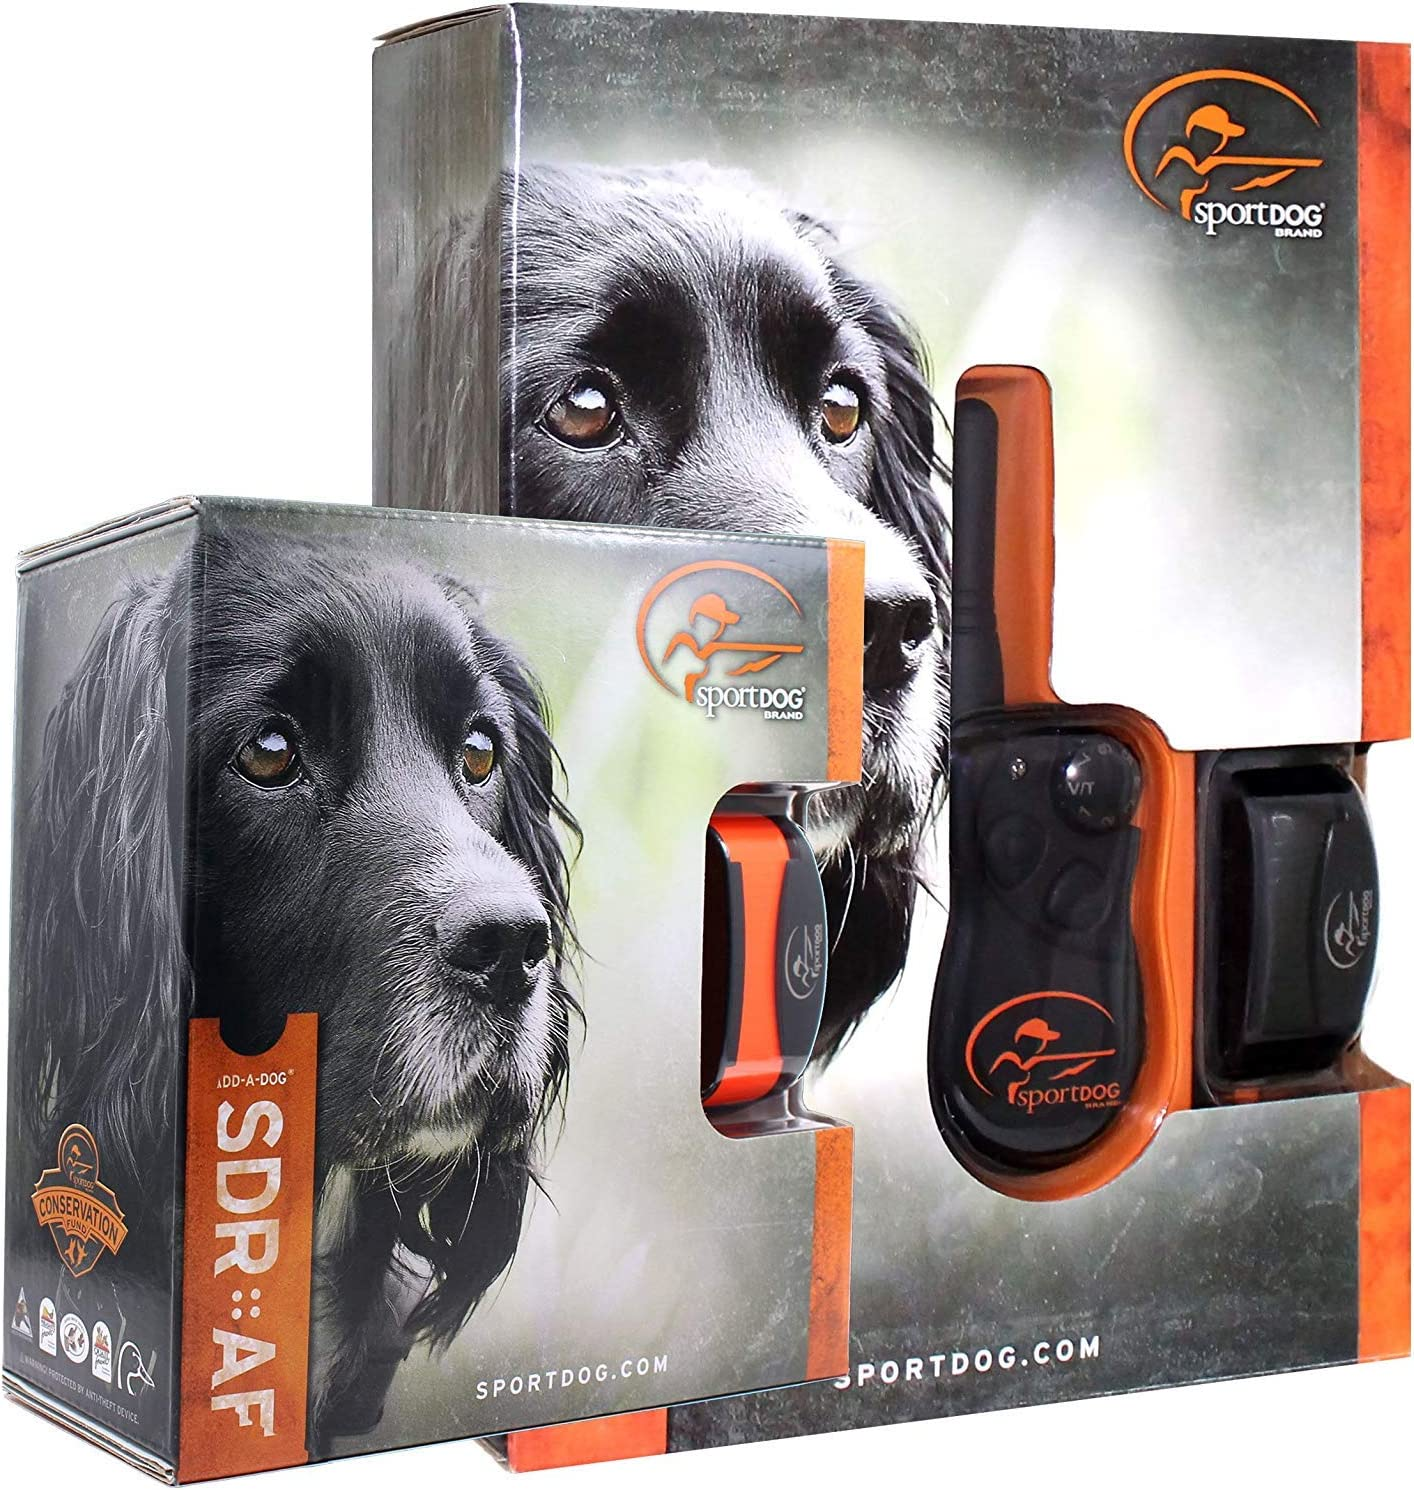 Bundle of 2 items - SportDog - SD-425 - SDR-AF Two Dog Field Trainer for Introductory and Advanced Training Dog Waterproof Shock Collar